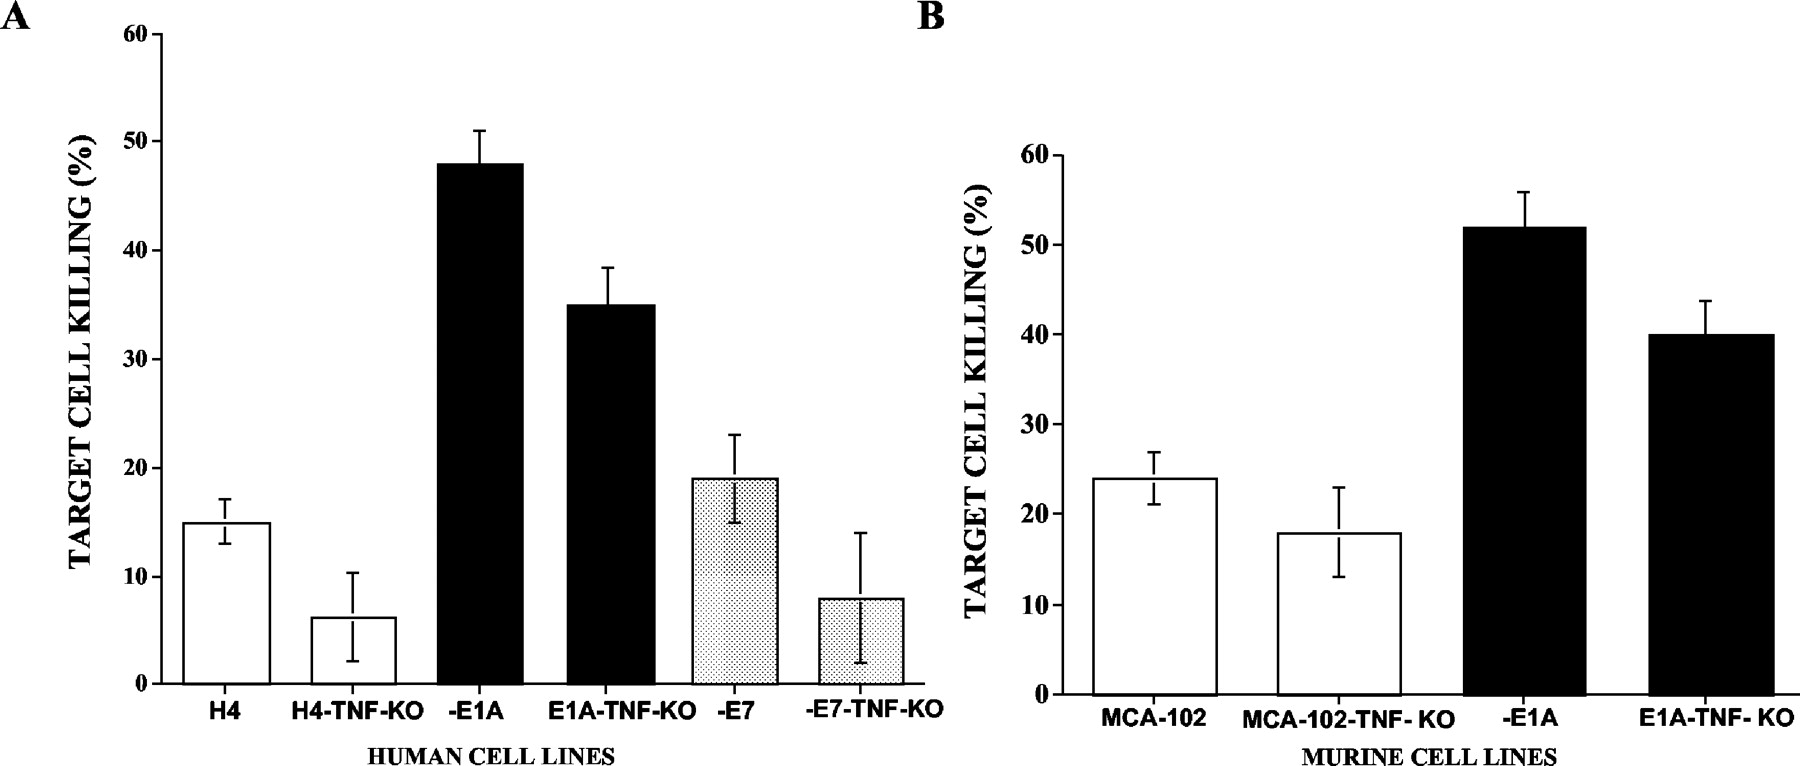 Adenovirus E1A, Not Human Papillomavirus E7, Sensitizes Tumor Cells